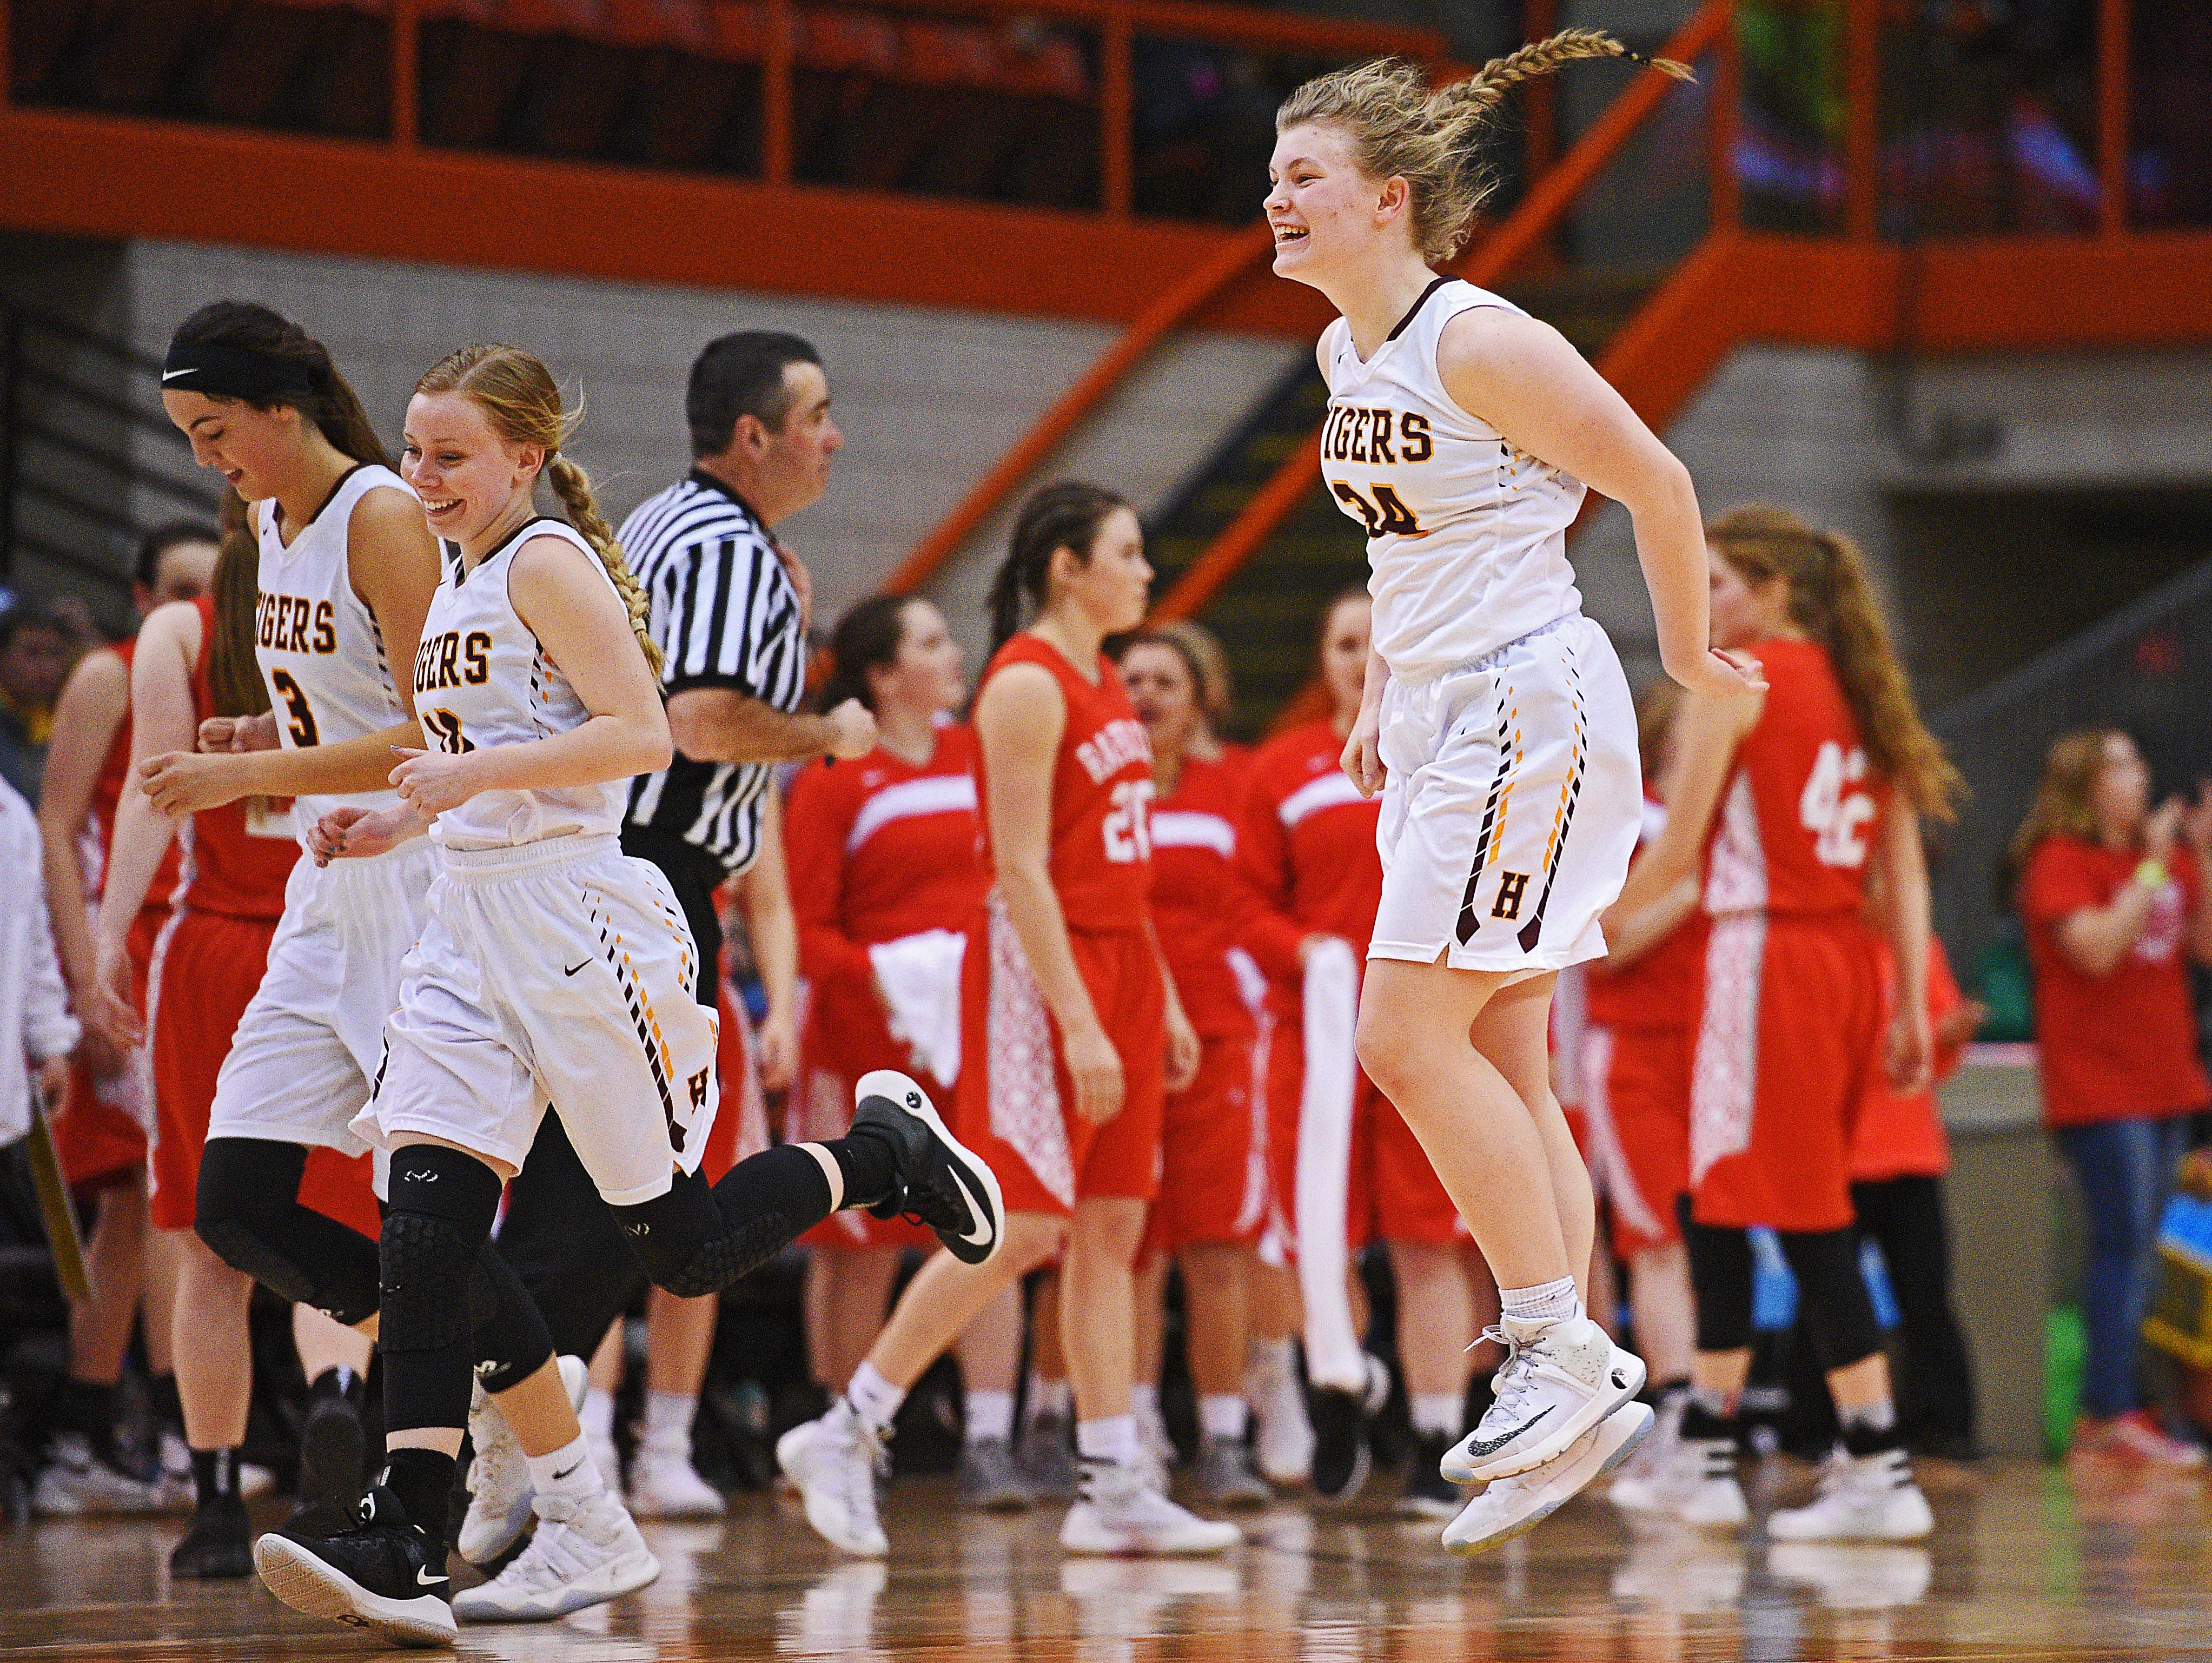 Harrisburg's Sydney Halling (34) reacts after their 49-44 win over Rapid City Central in a 2017 SDHSAA Class AA State Girls Basketball semifinal game Friday, March 17, 2017, at Rushmore Plaza Civic Center in Rapid City.